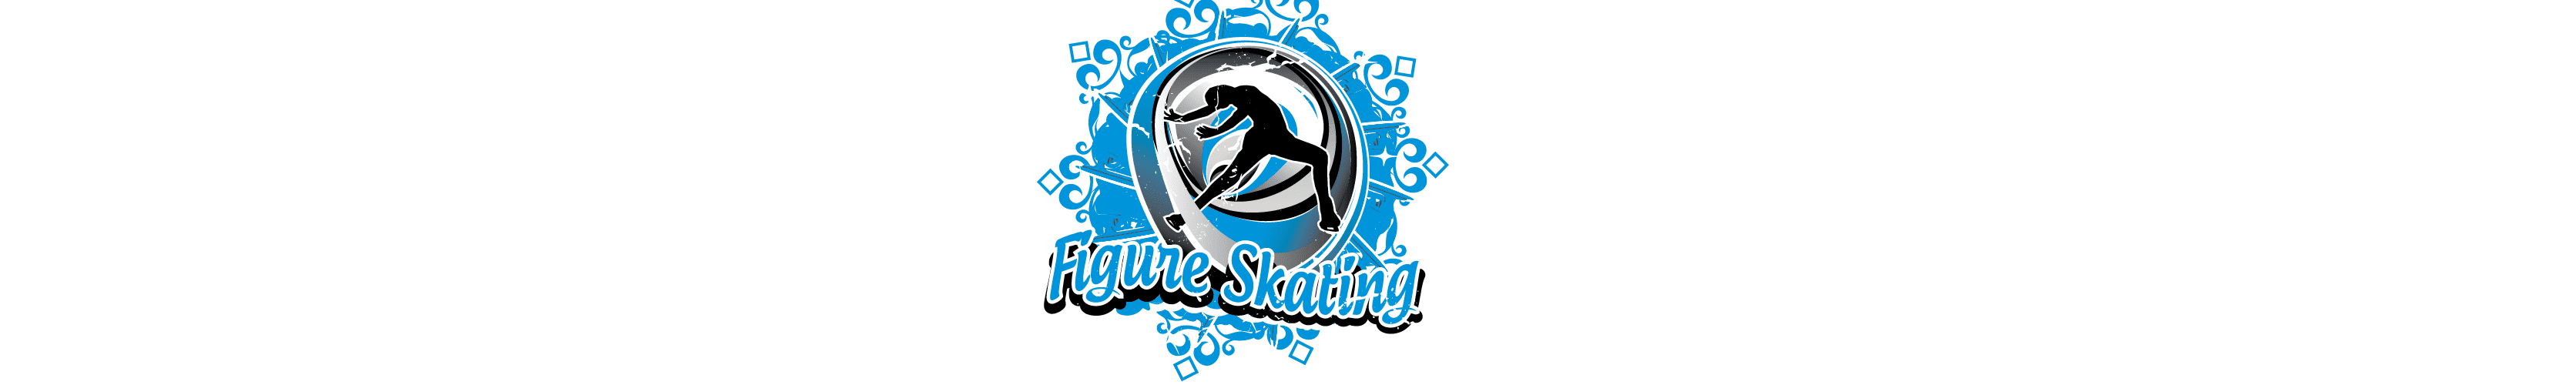 VECTOR LOGO DESIGN FOR PRINT FIGURE SKATING EVENT